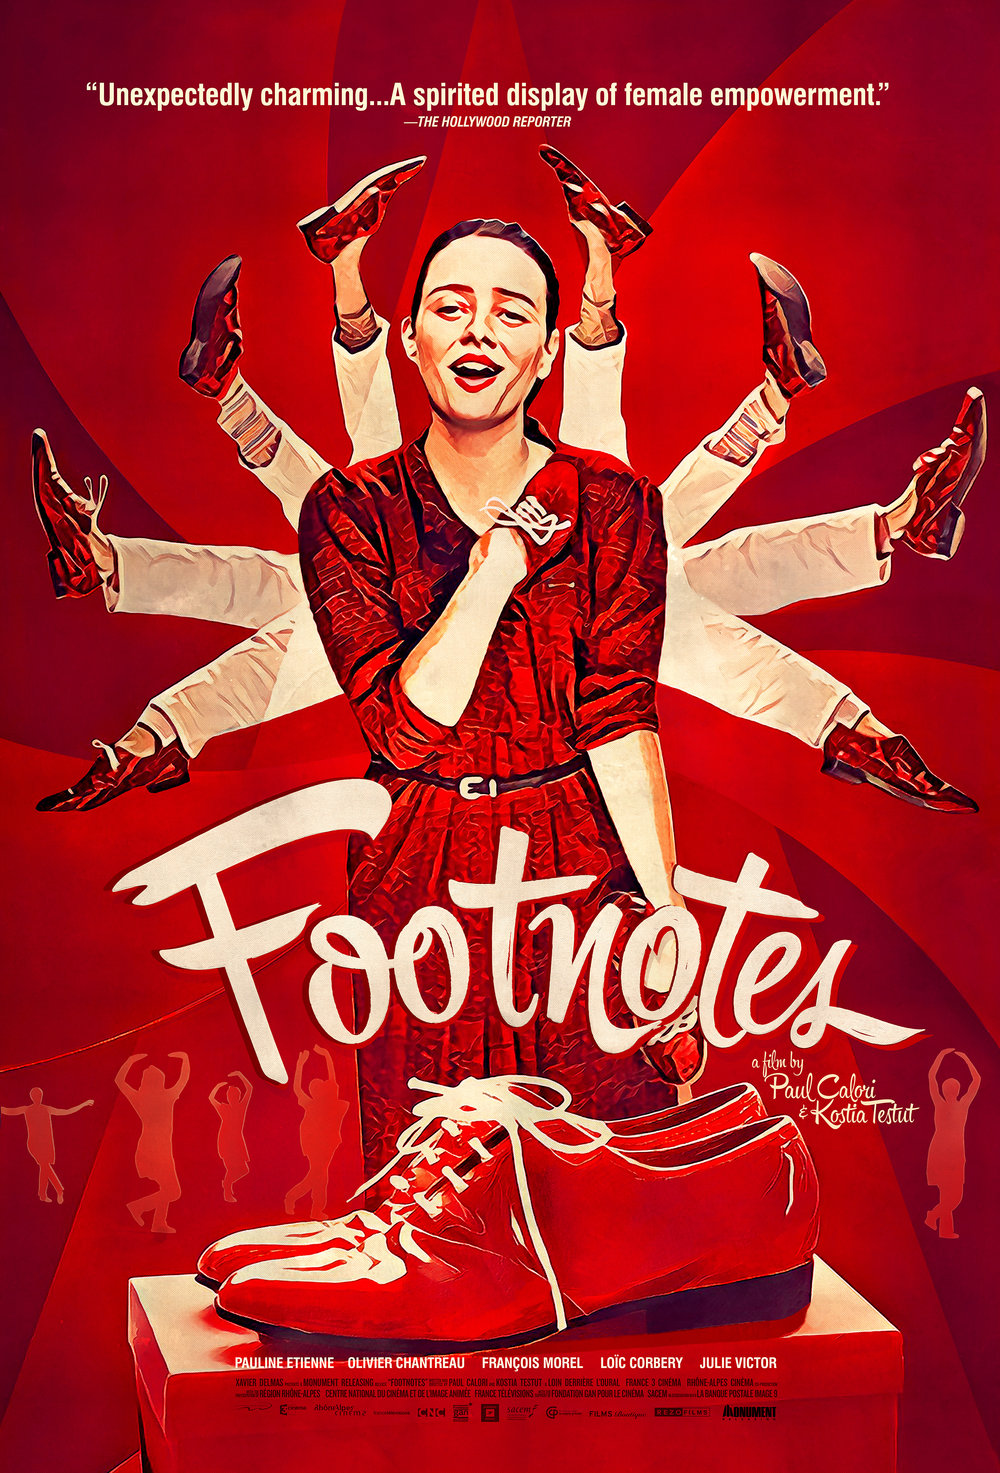 Have a Spotify Account? - Listen to the official Footnotes soundtrack with original songs written by Olivia Ruiz, Clarika, and many more!